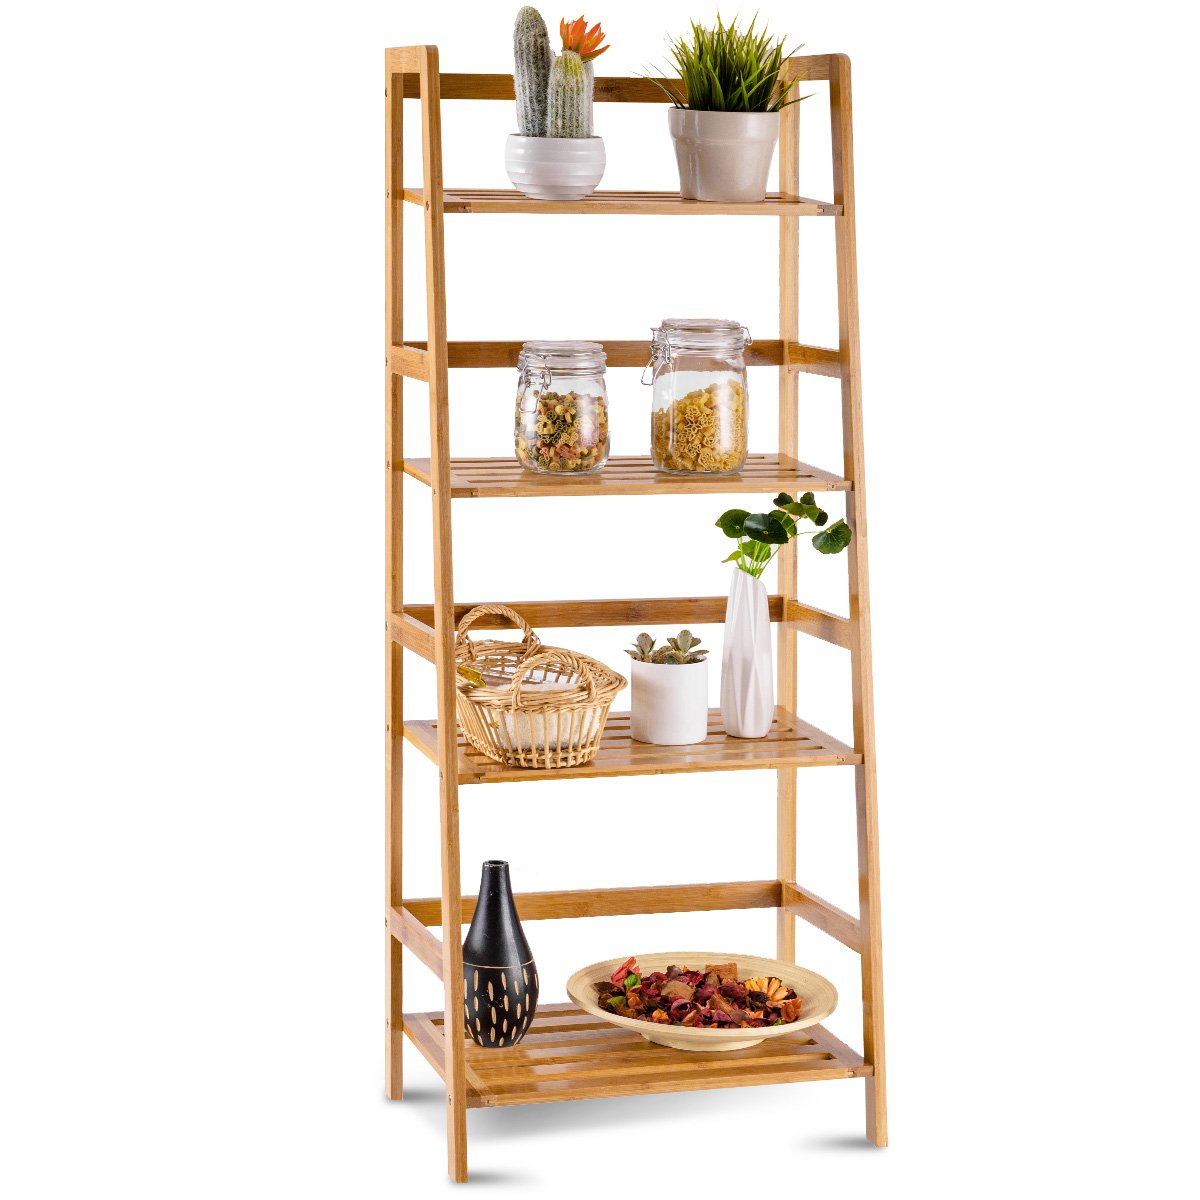 COSTWAY Bamboo Ladder Shelf Multifunctional Plant Flower Display Stand Storage Rack Bookcase Bookshelf Natural (4 Tier) by COSTWAY